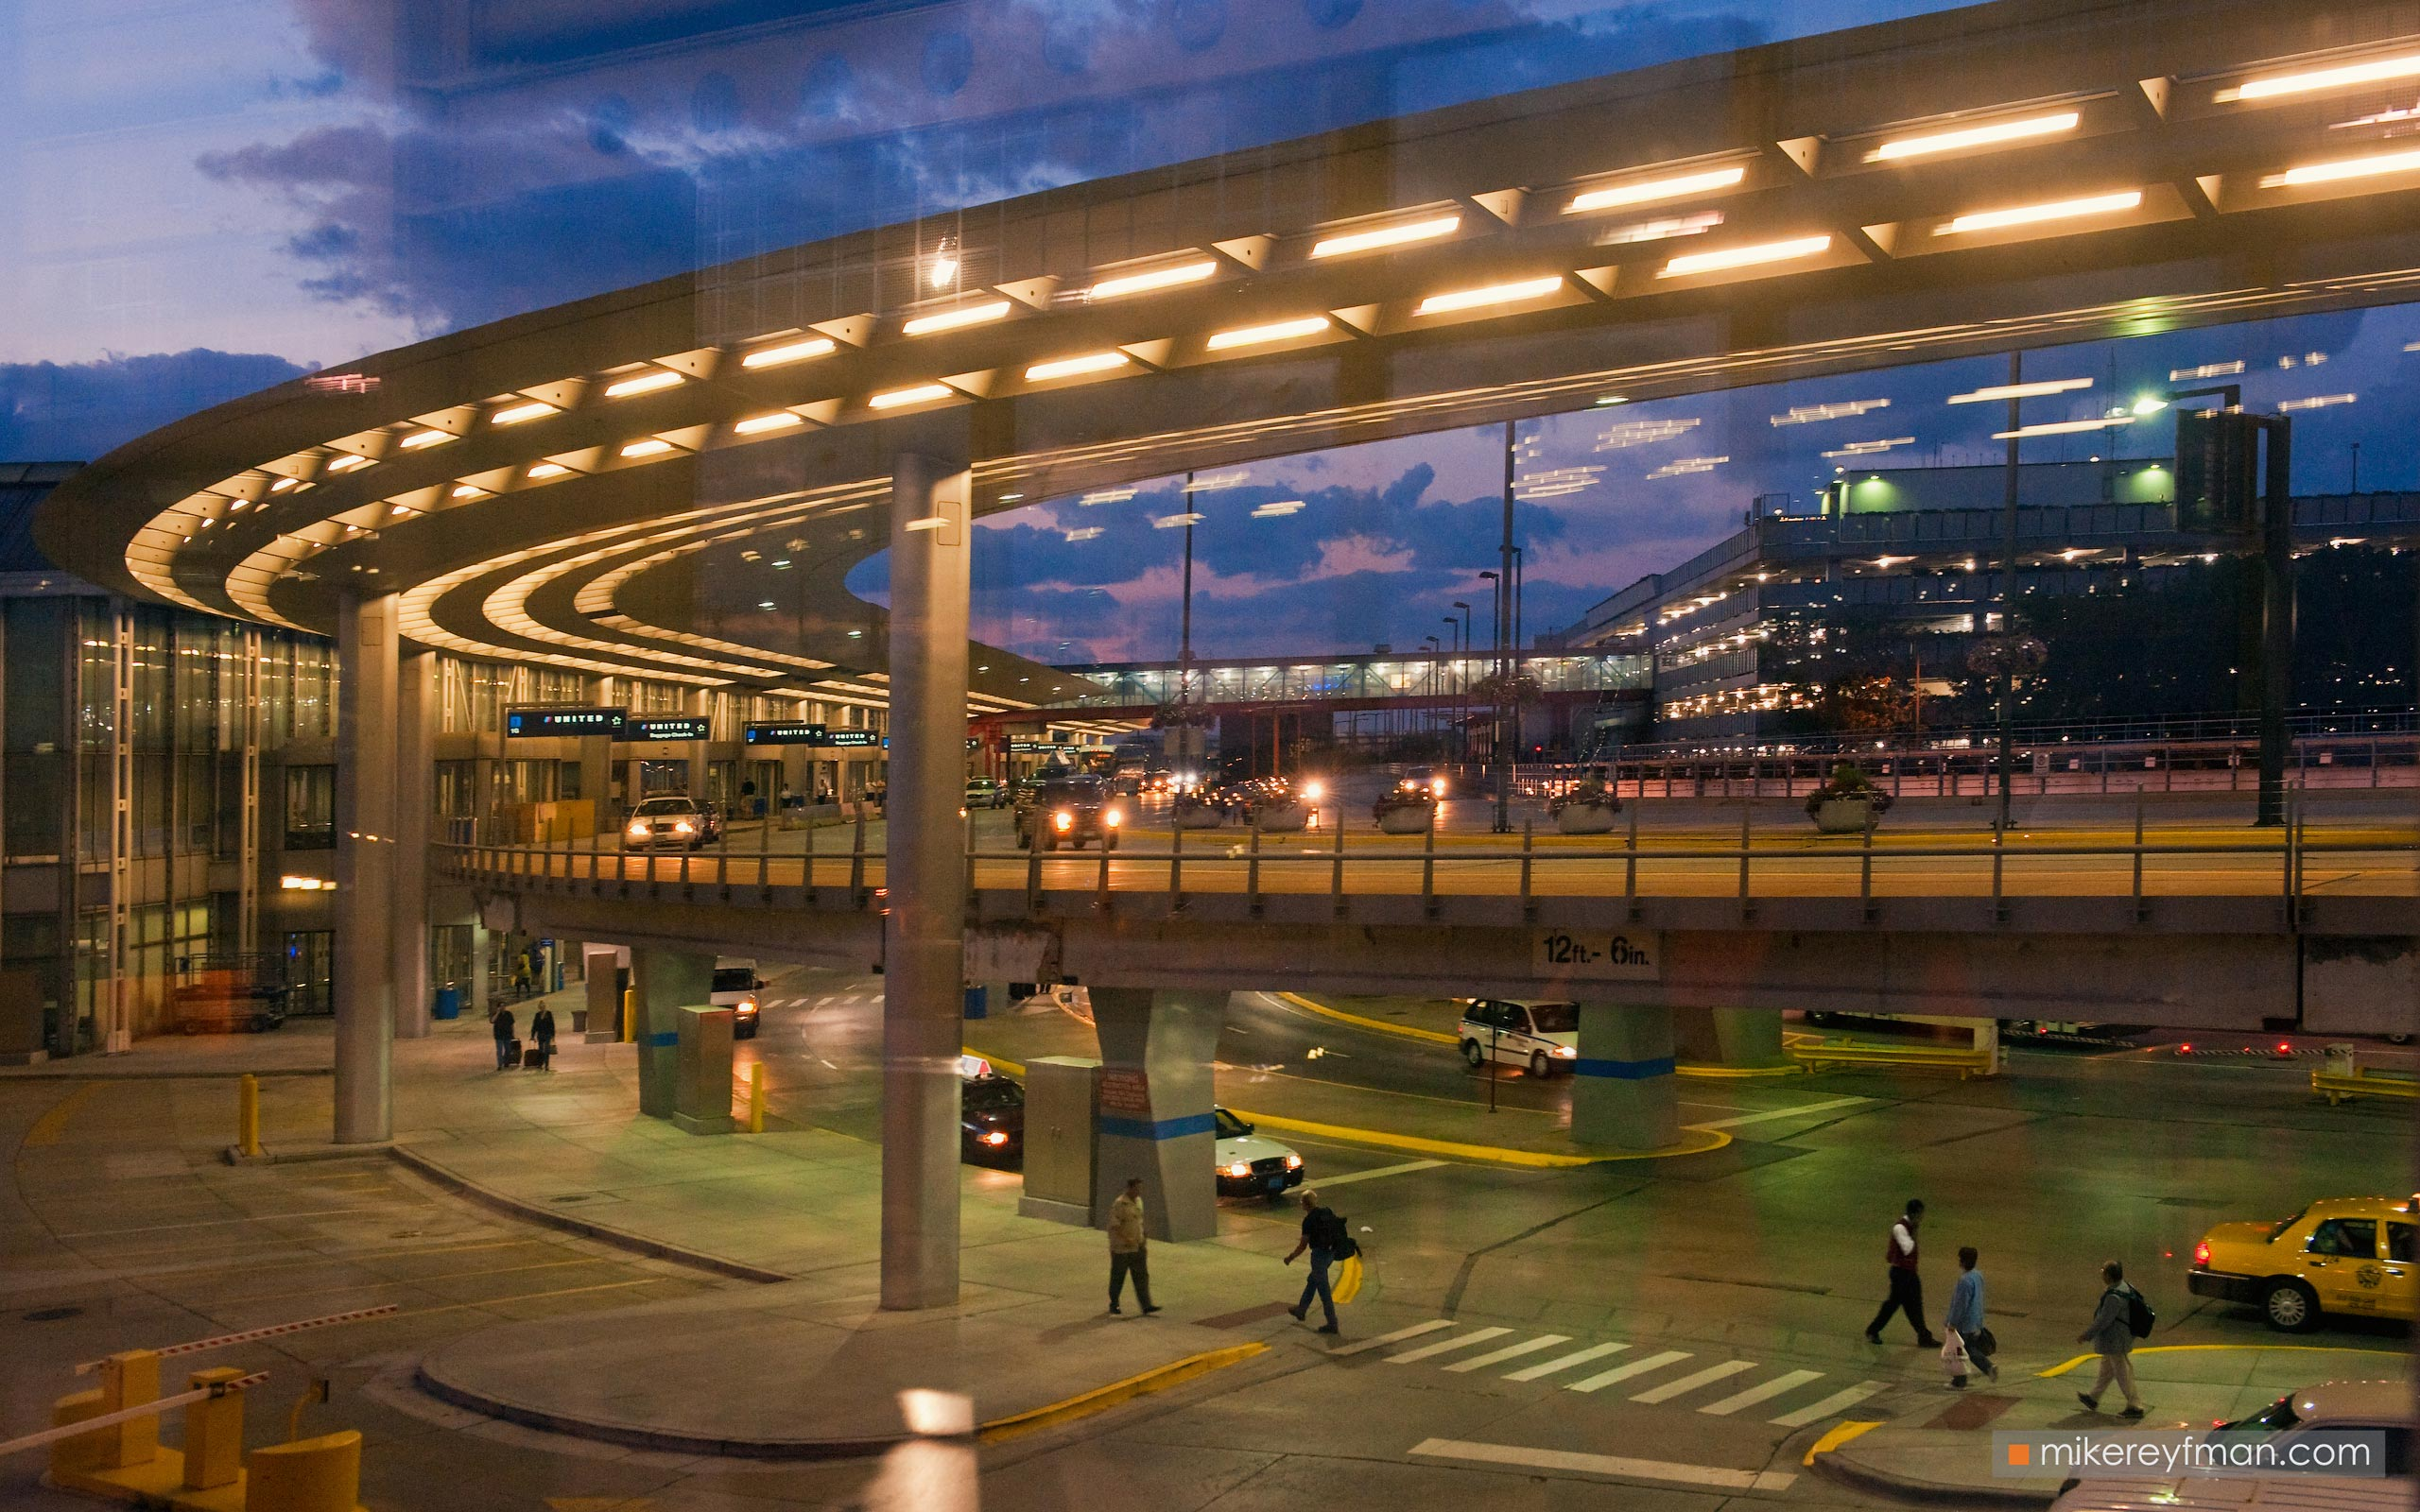 O'Hare International Airport. Chicago, Illinois, USA. 108-CH1-MR27479 - Chicago, USA: The